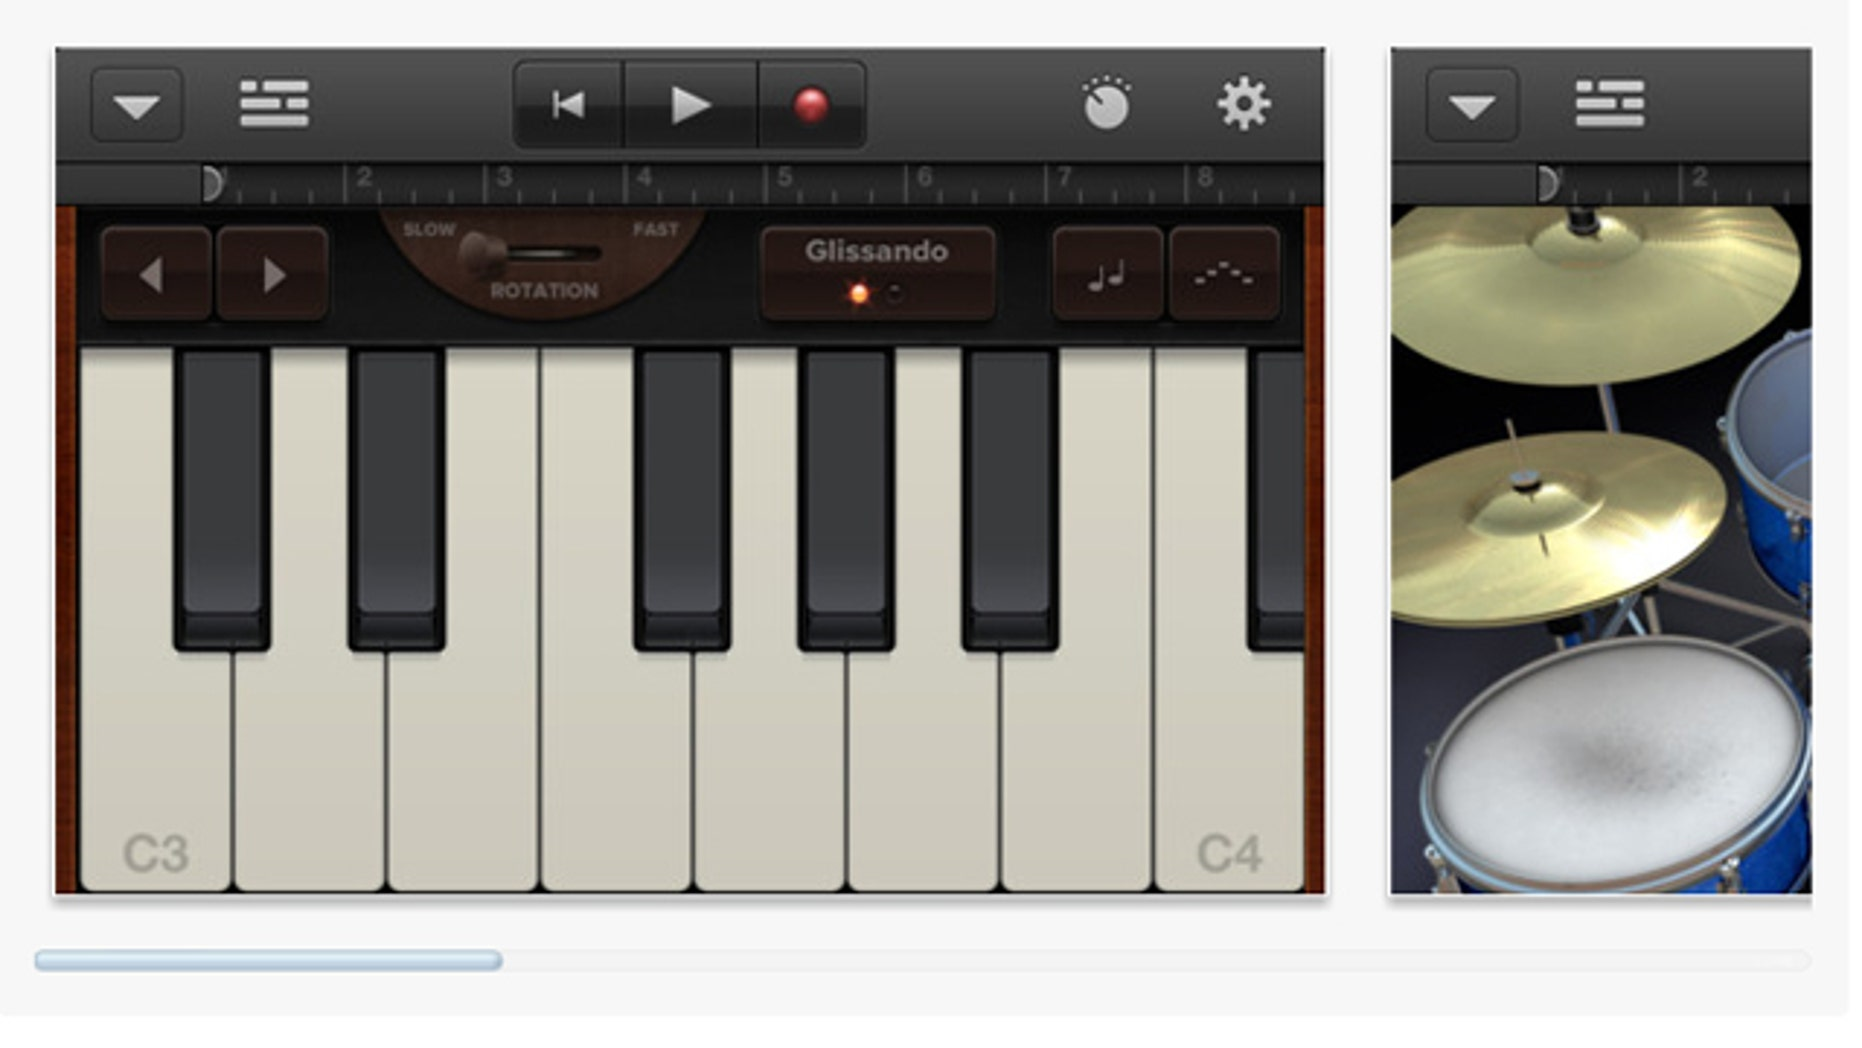 GarageBand turns your iPad, iPhone and iPod touch into a full-featured recording studio.